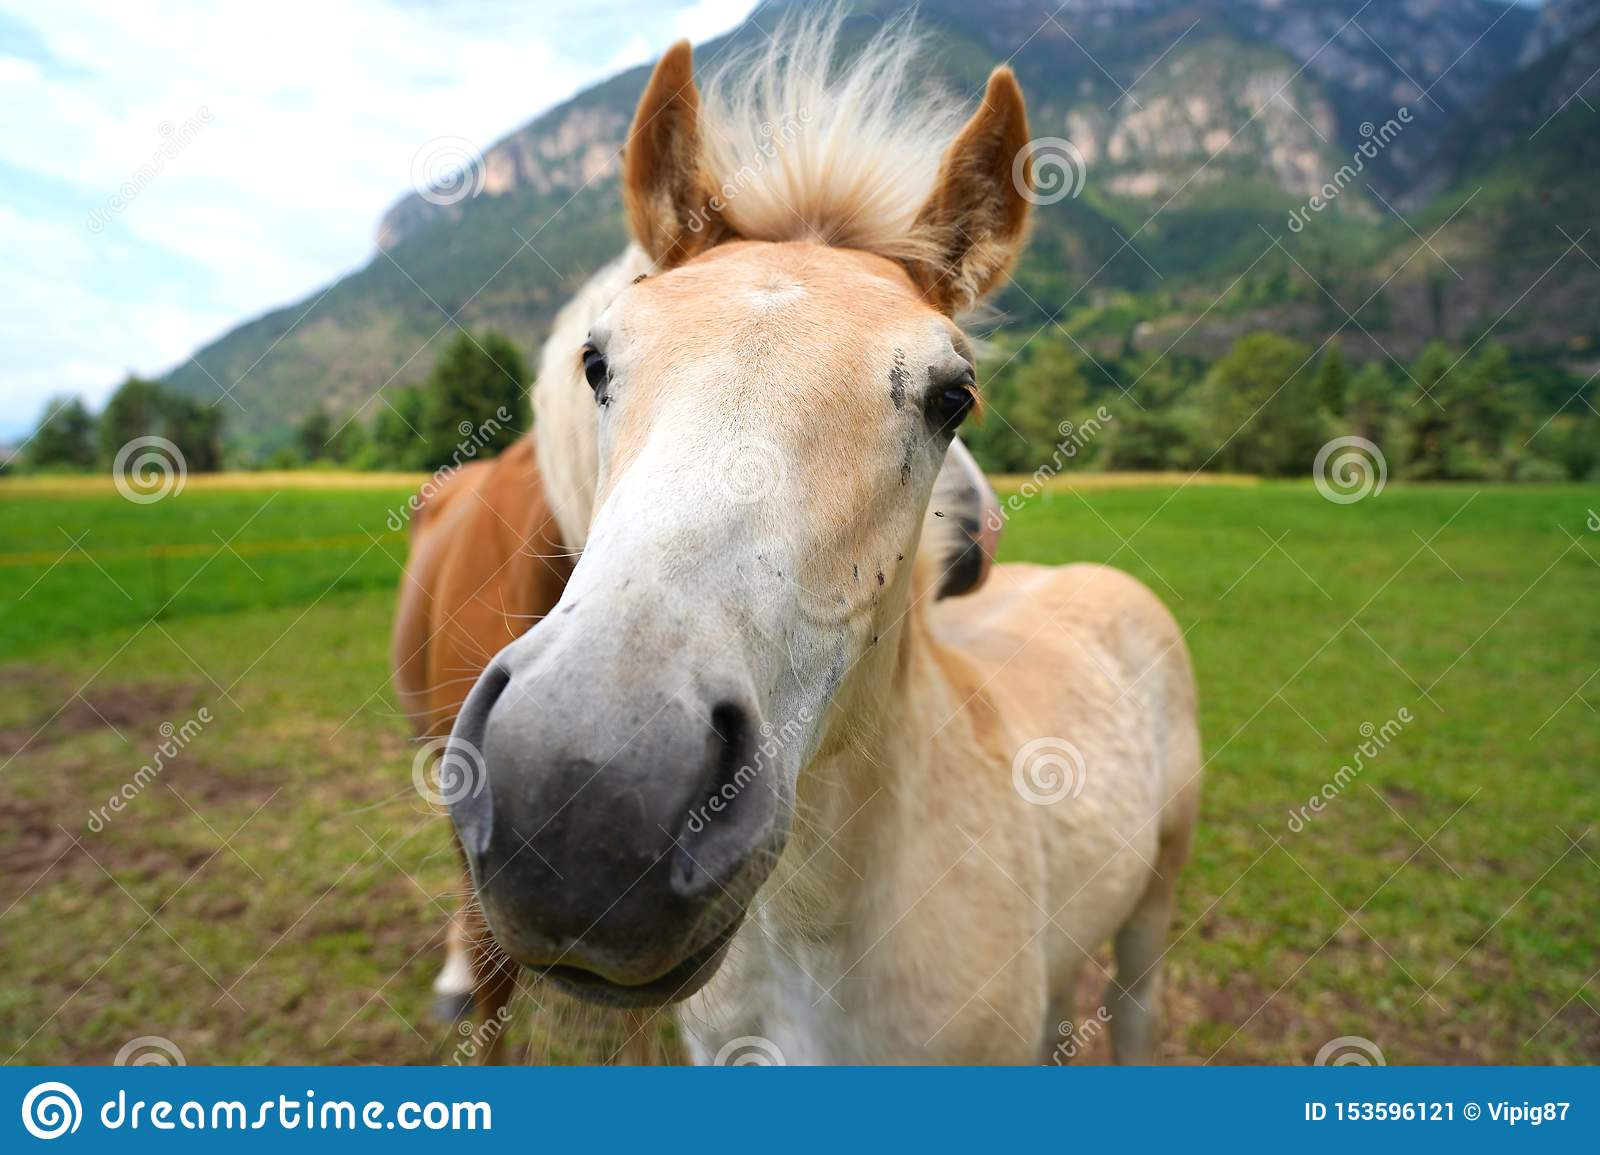 Palomino Horse Avelignese The Haflinger A Breed Of Horse Deve Stock Image Image Of Chestnut Equestrian 153596121